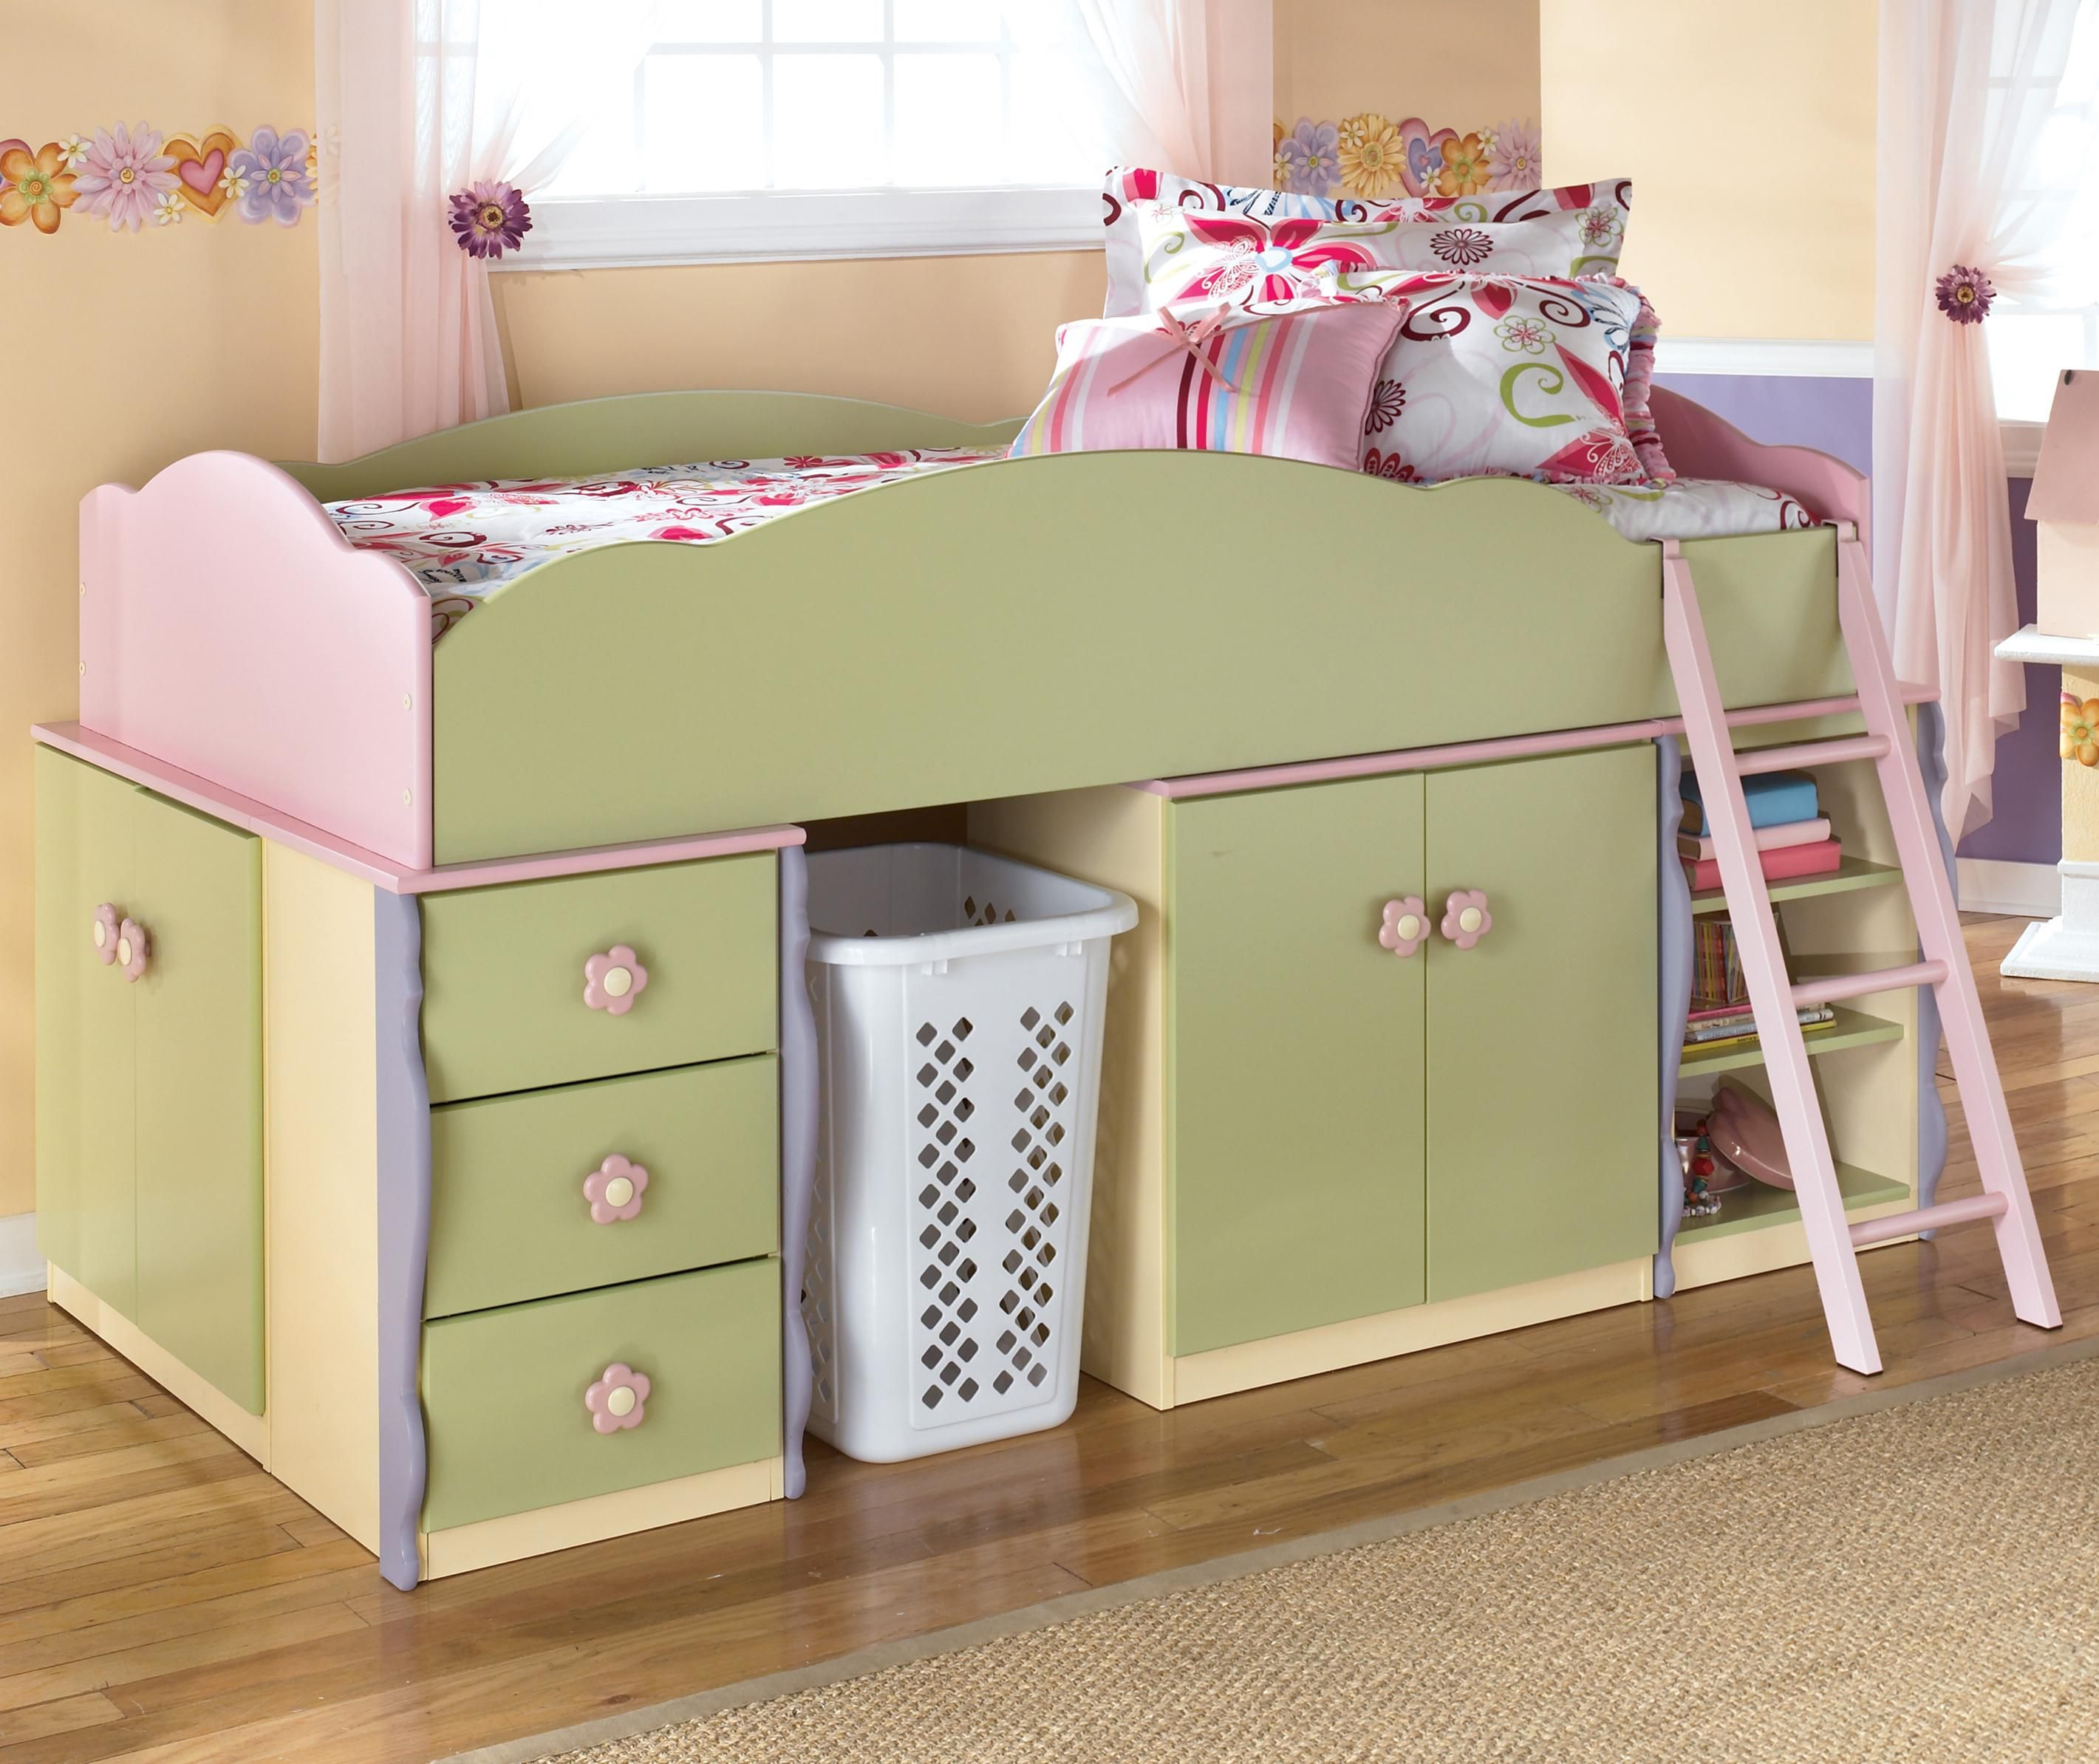 Best Doll House Loft Bed With Basket Space By Signature Design 400 x 300